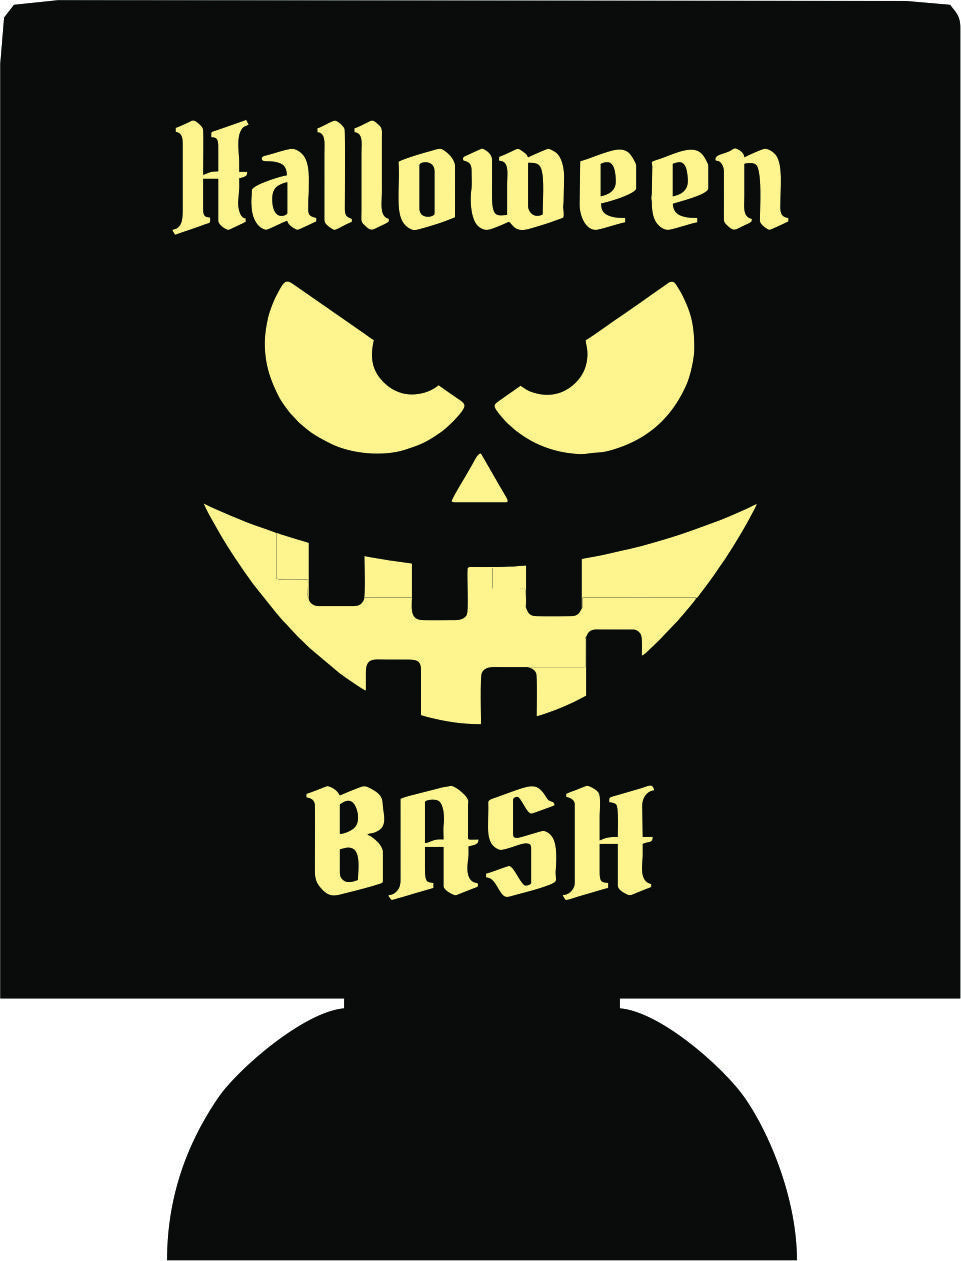 Halloween bash Face Party Koozies favors can coolers